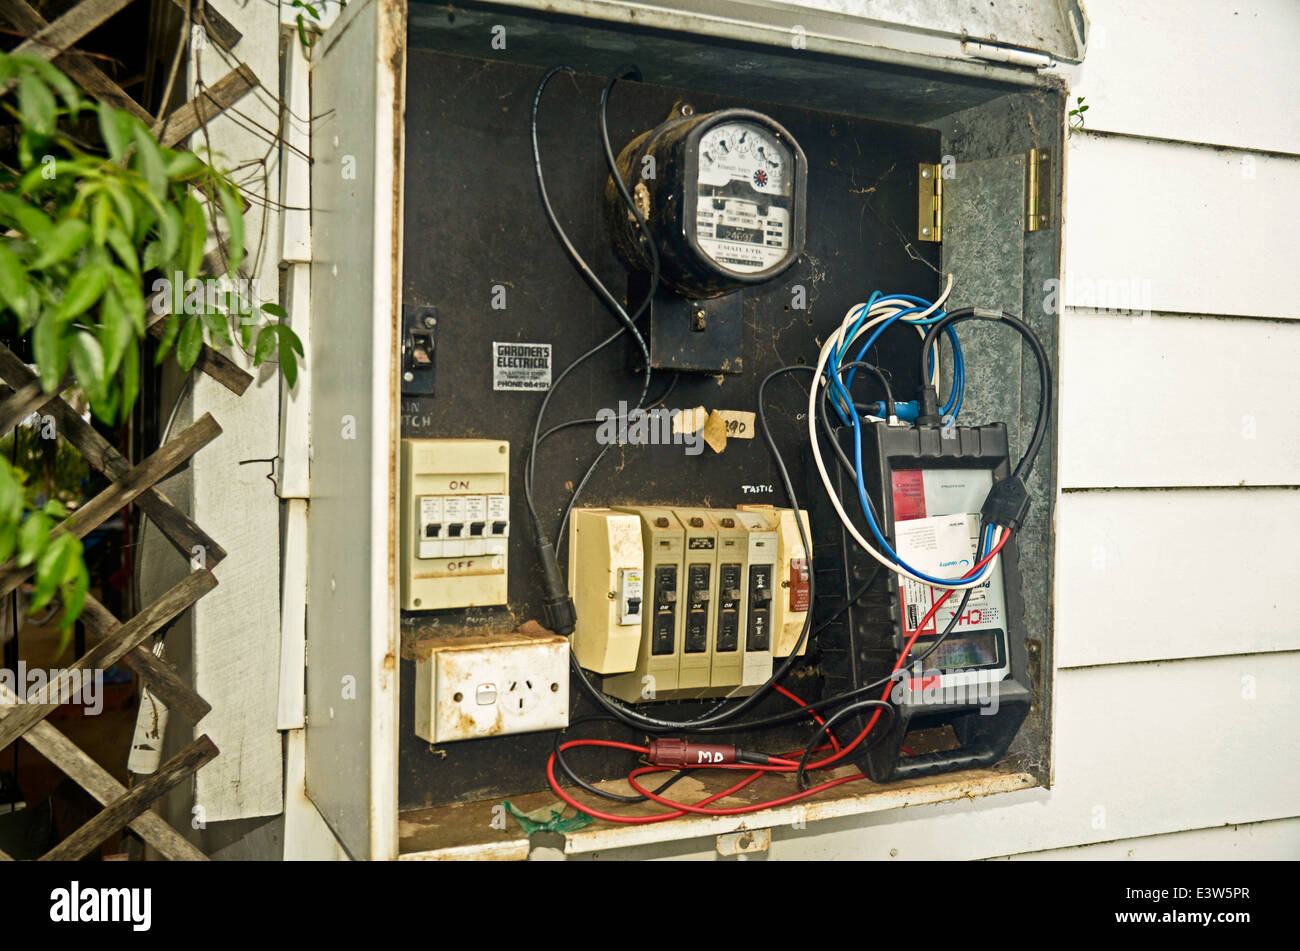 Electricity meter with 3 phase power and disturbance analyzer - Stock Image